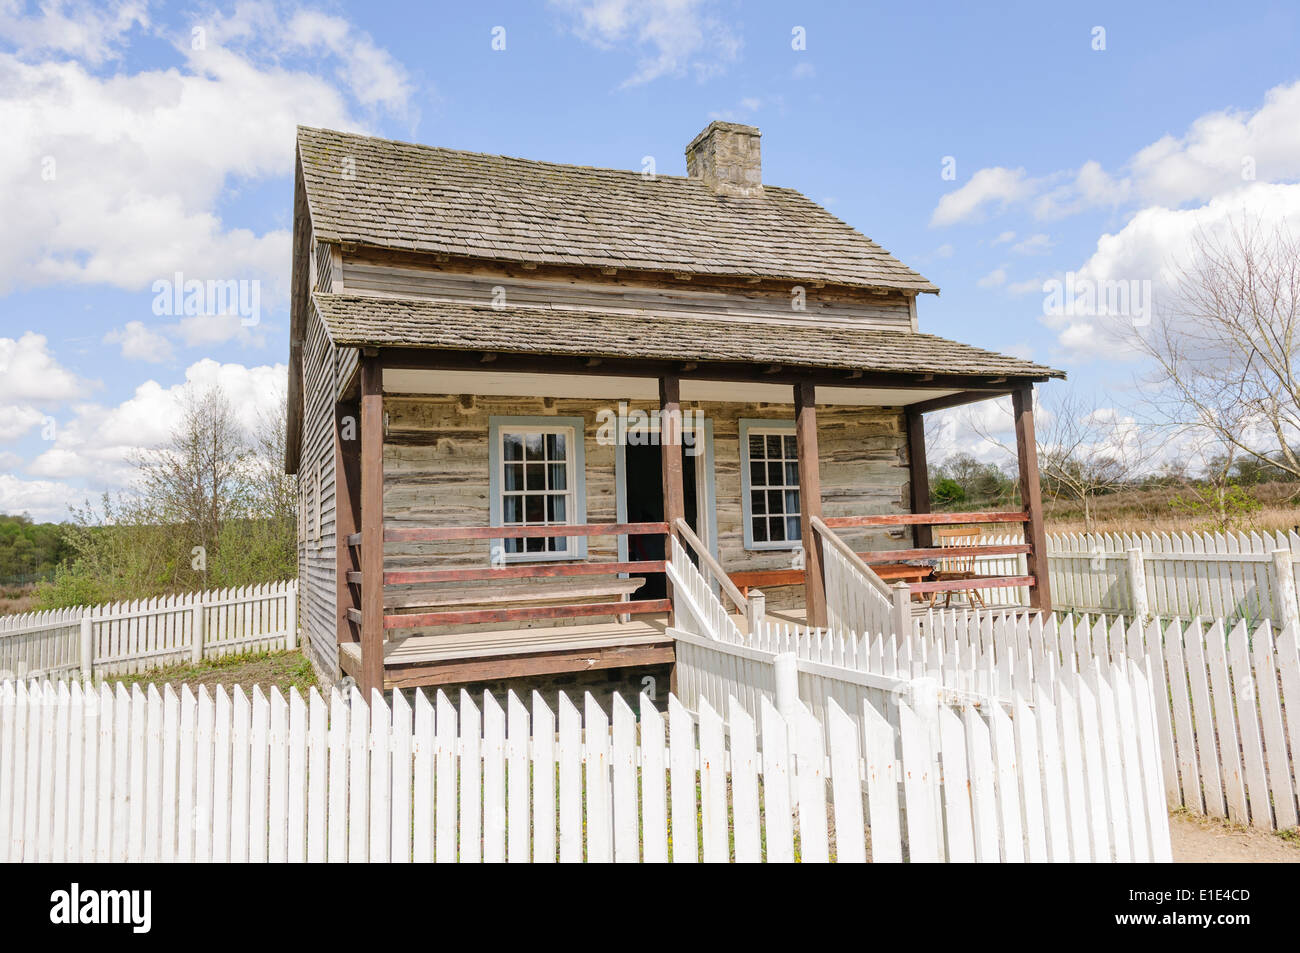 Old Fashioned Wooden American Farm House With A White